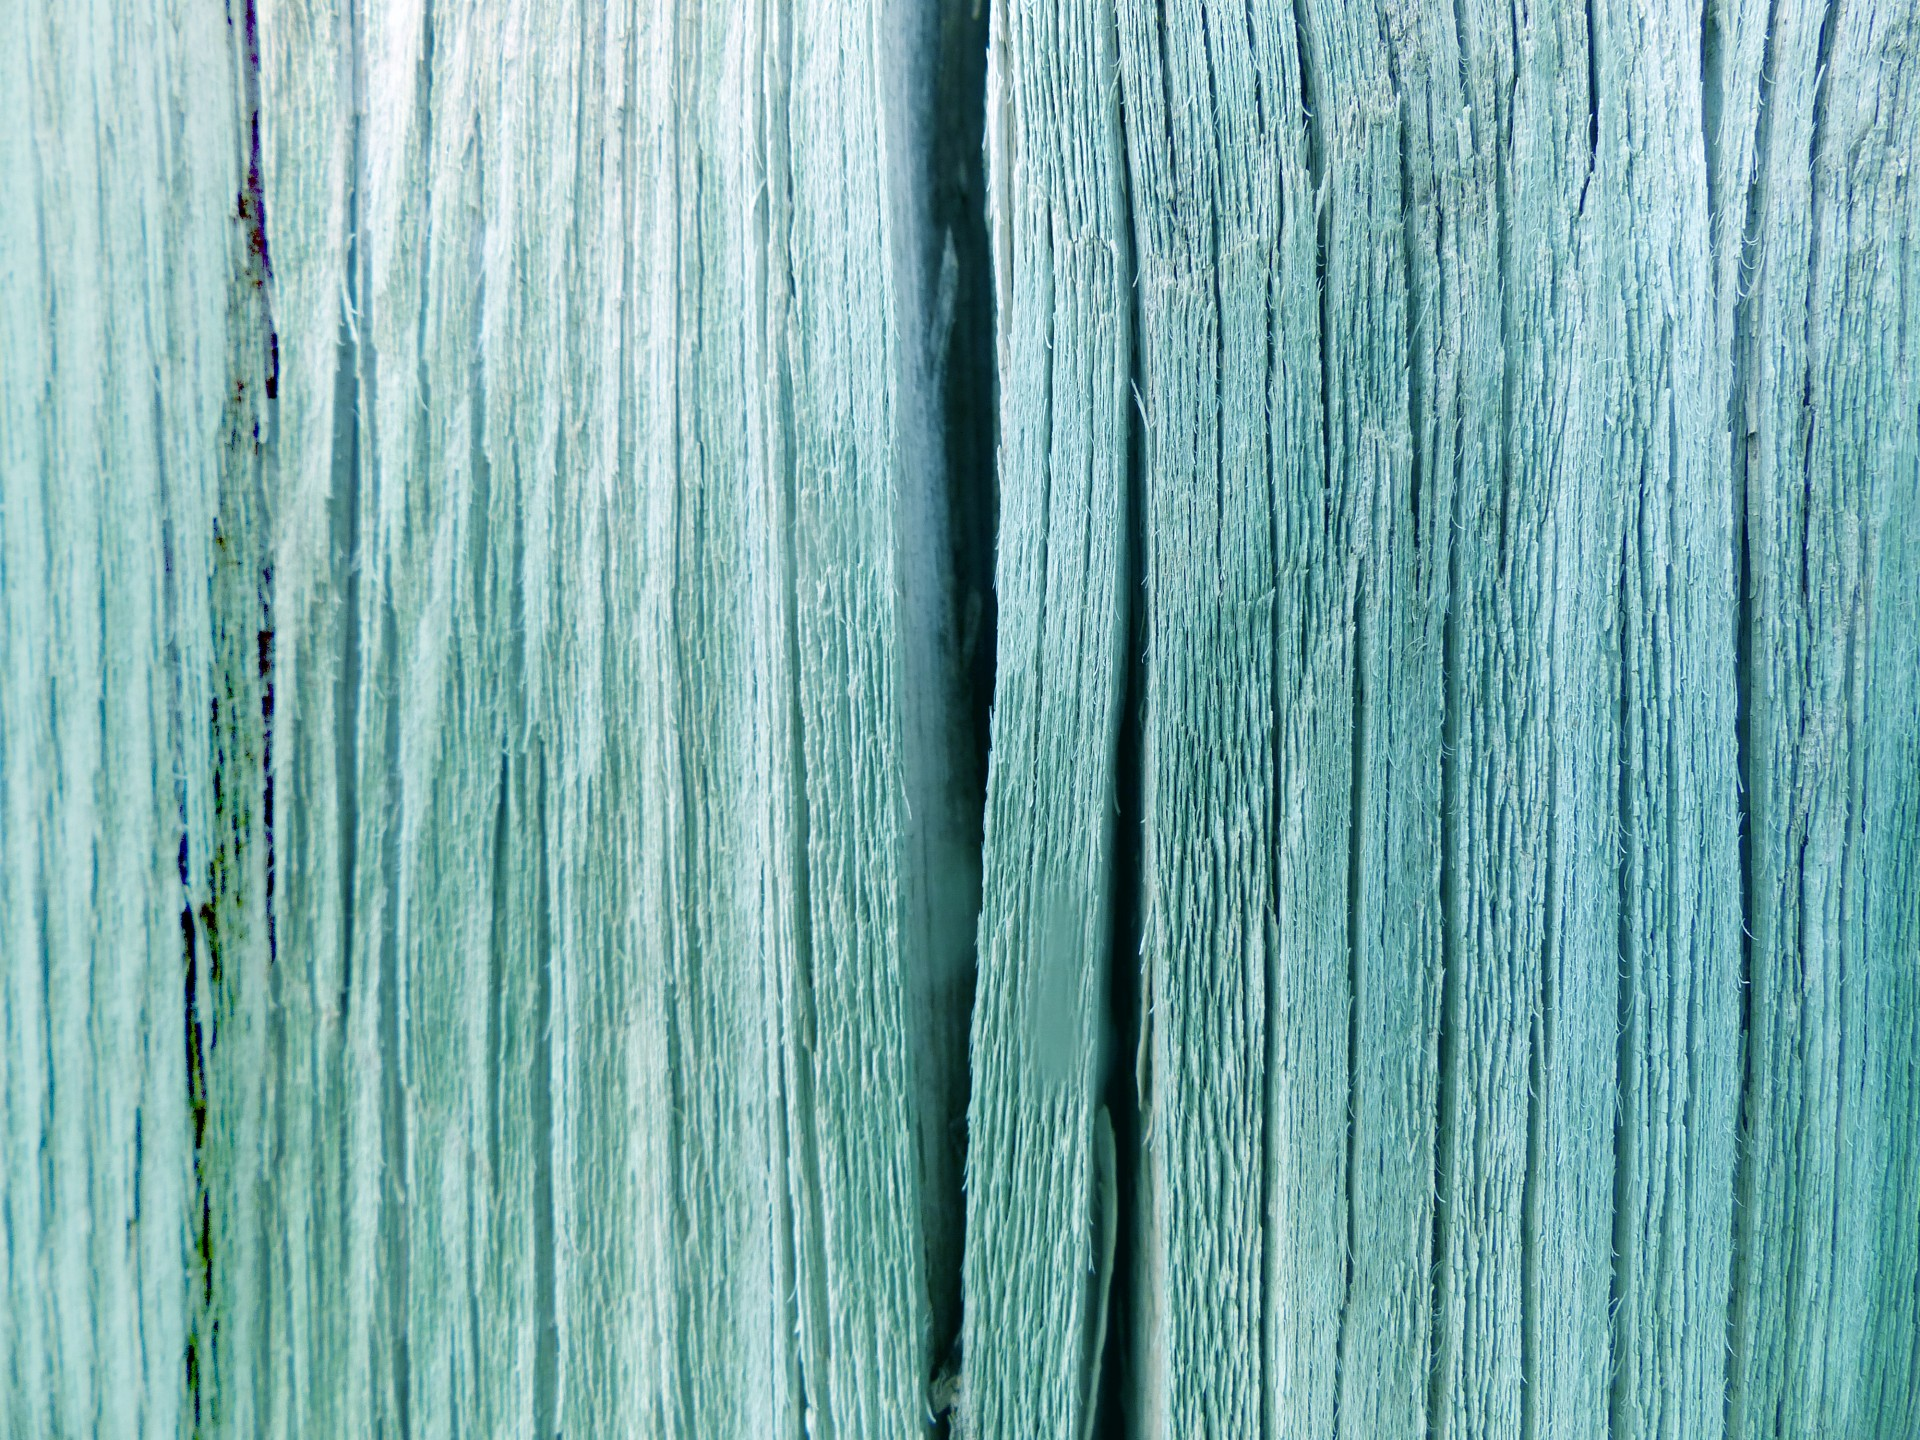 Wood Fence Texture Closeup Free Stock Photo - Public Domain Pictures